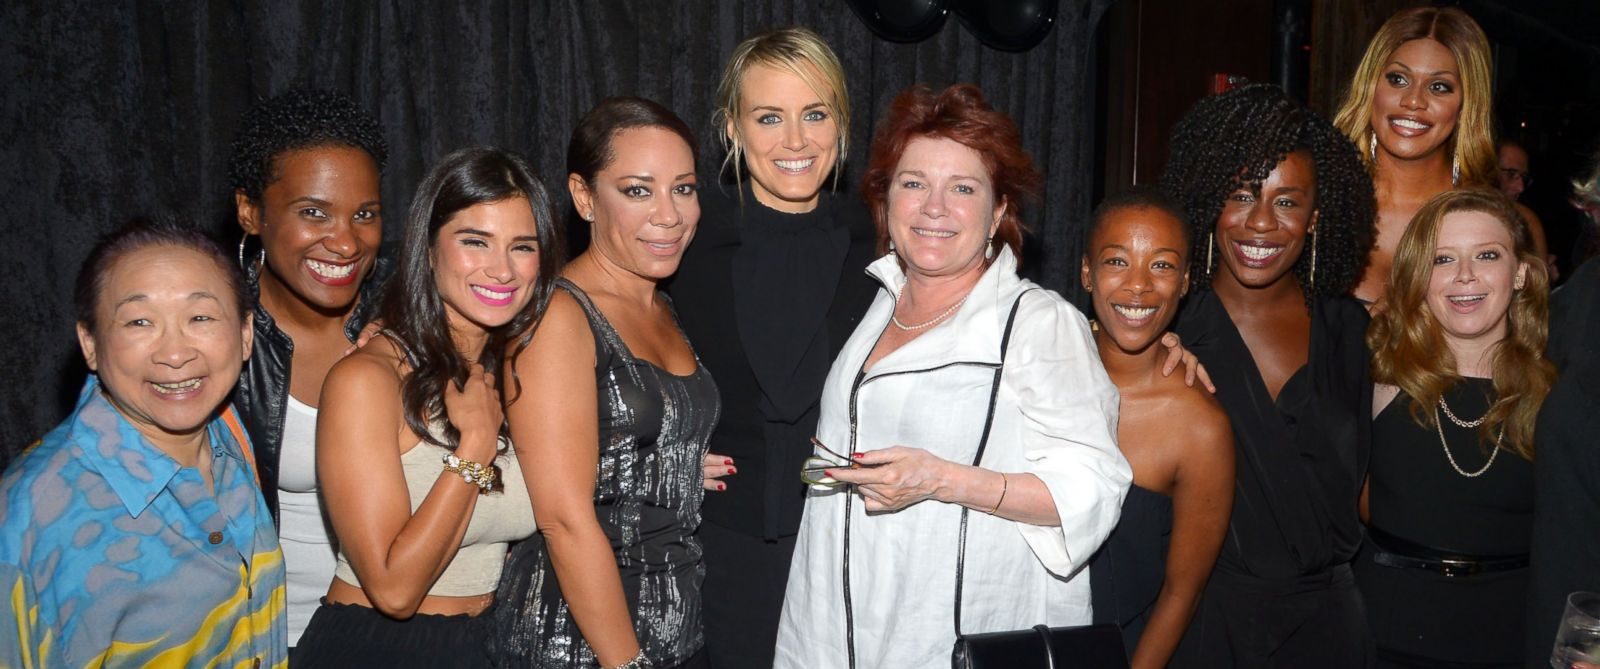 """PHOTO: Taylor Schilling celebrates her 30th birthday at CATCH Roof in New York City on July 26, 2014 with several """"Orange is the New Black"""" cast members including Kate Mulgrew, Natasha Lyonne, and Laverne Cox."""